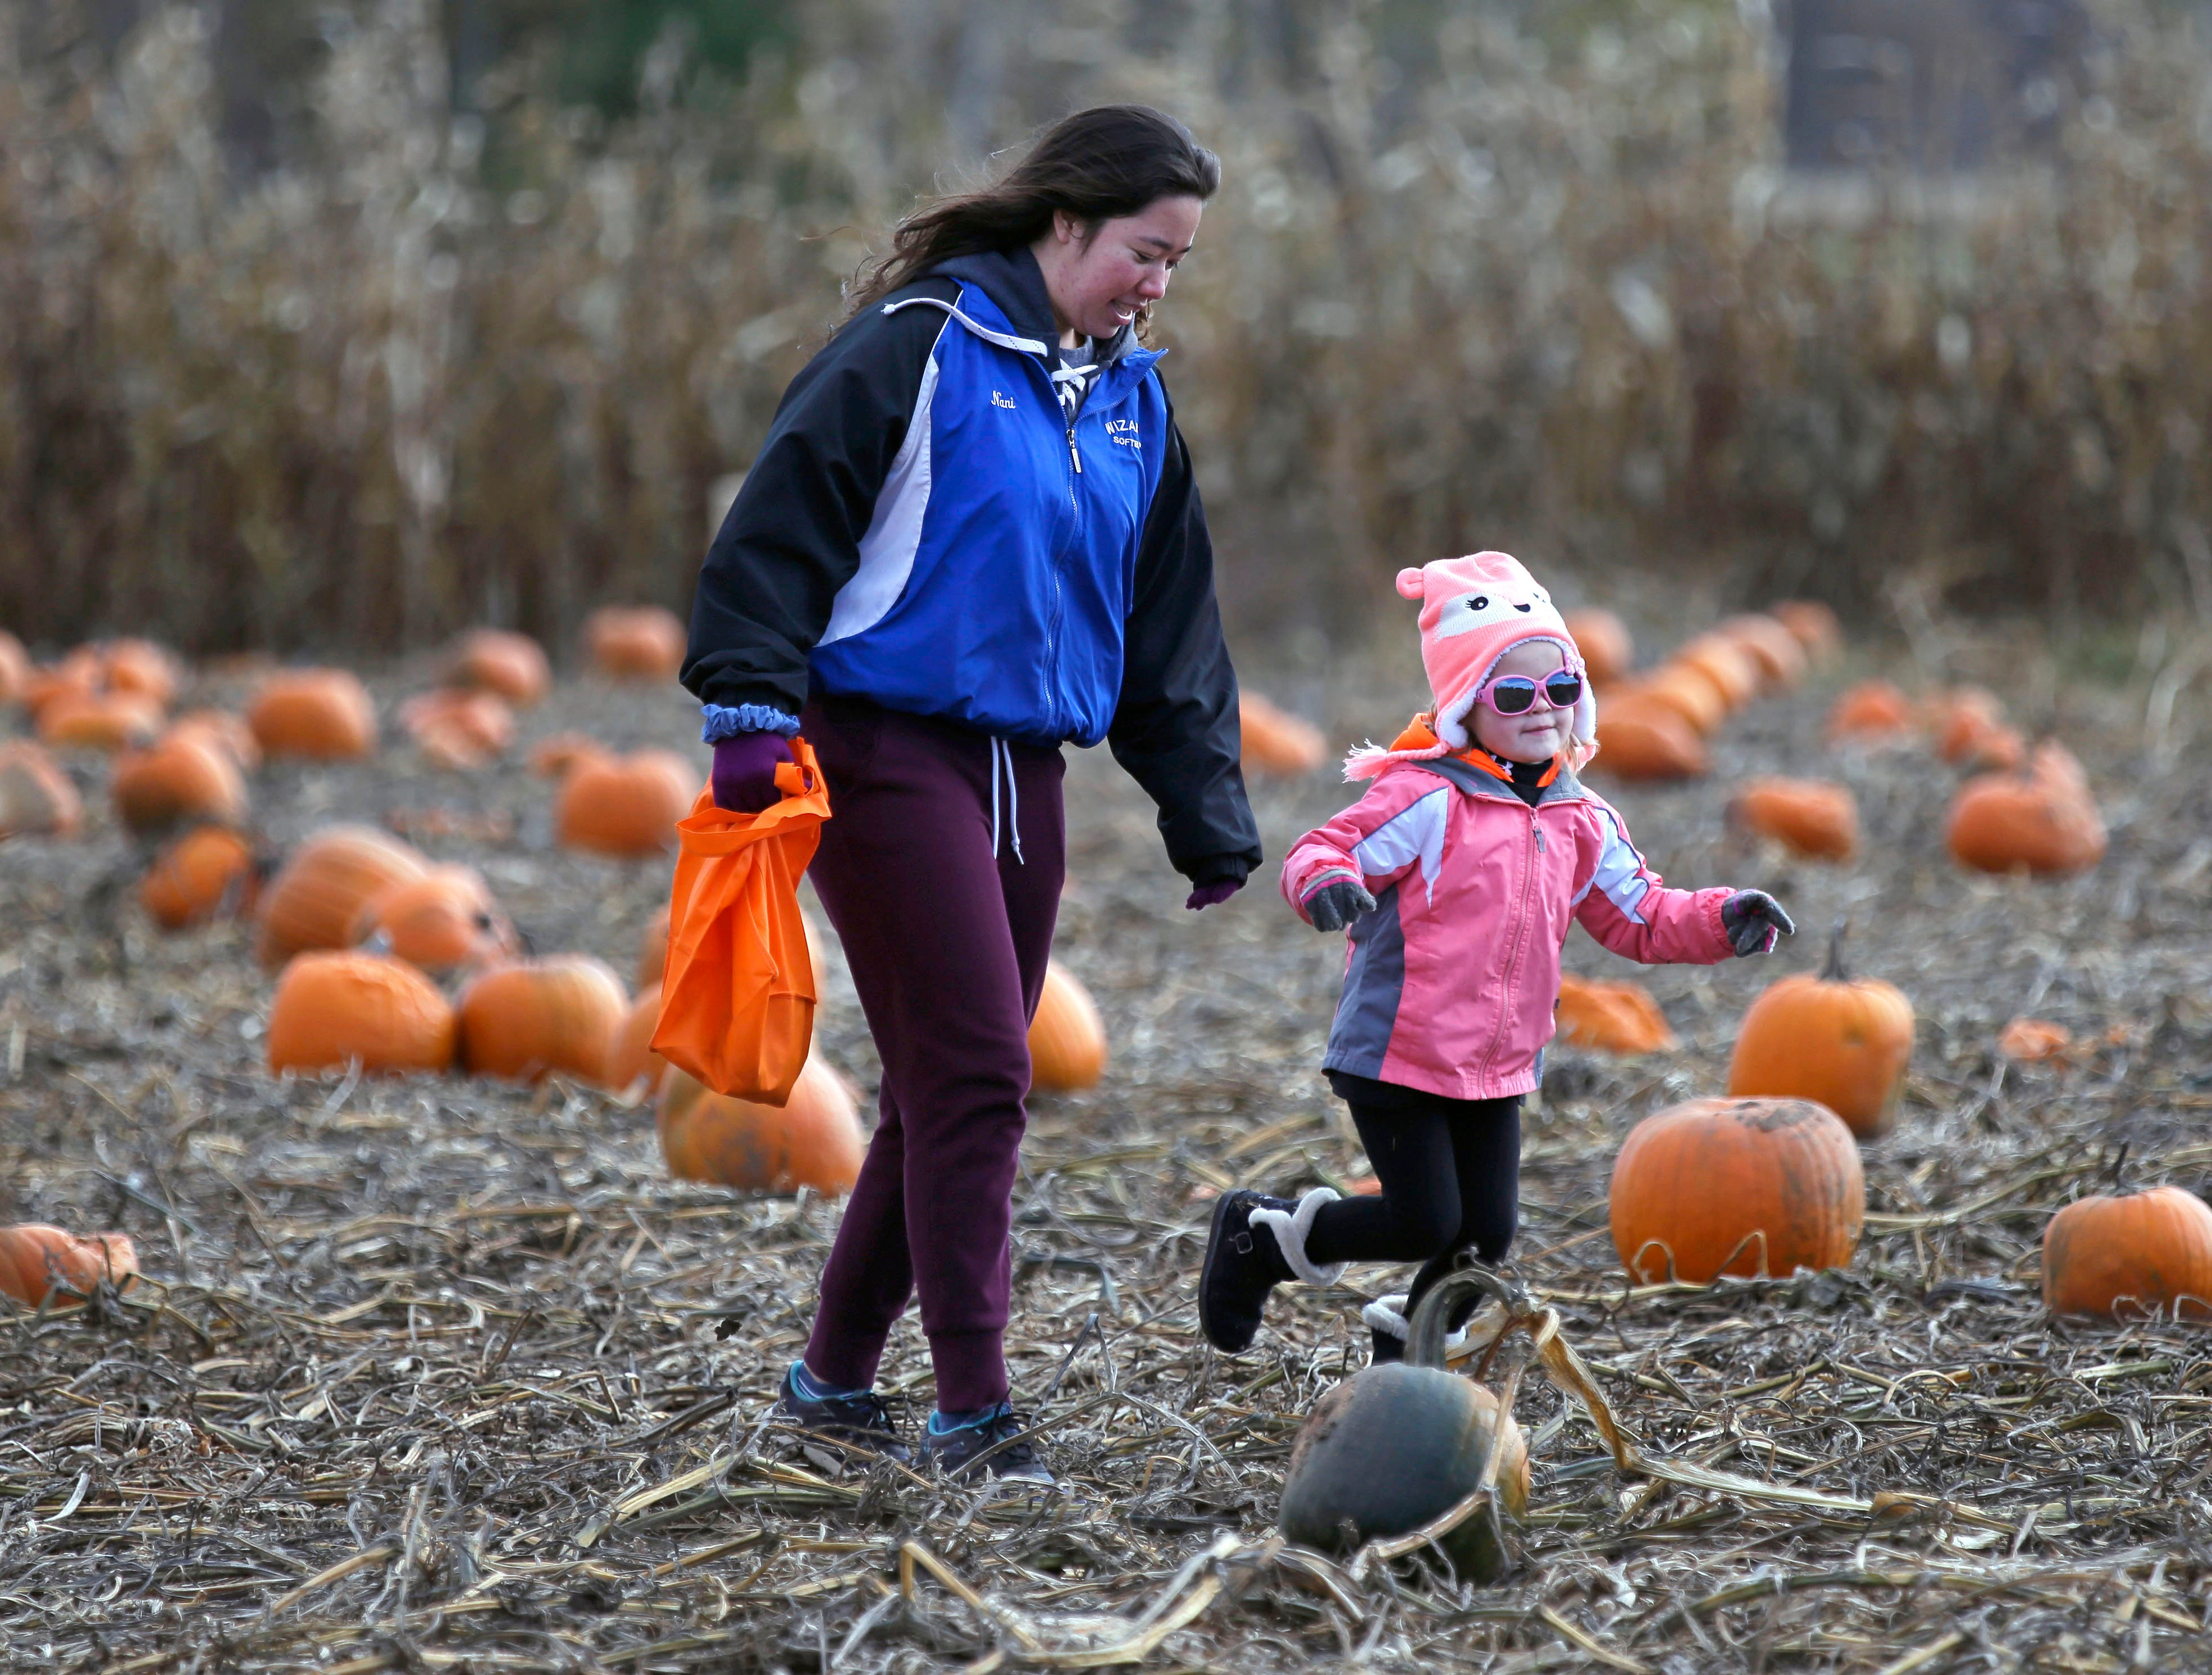 Carley Rasmussen of Black Creek has her sunglasses on as she runs through the pumpkin patch with Hoku Tanigchi Sunday, October 21, 2018, at Cuff Farms in Hortonville, Wis.